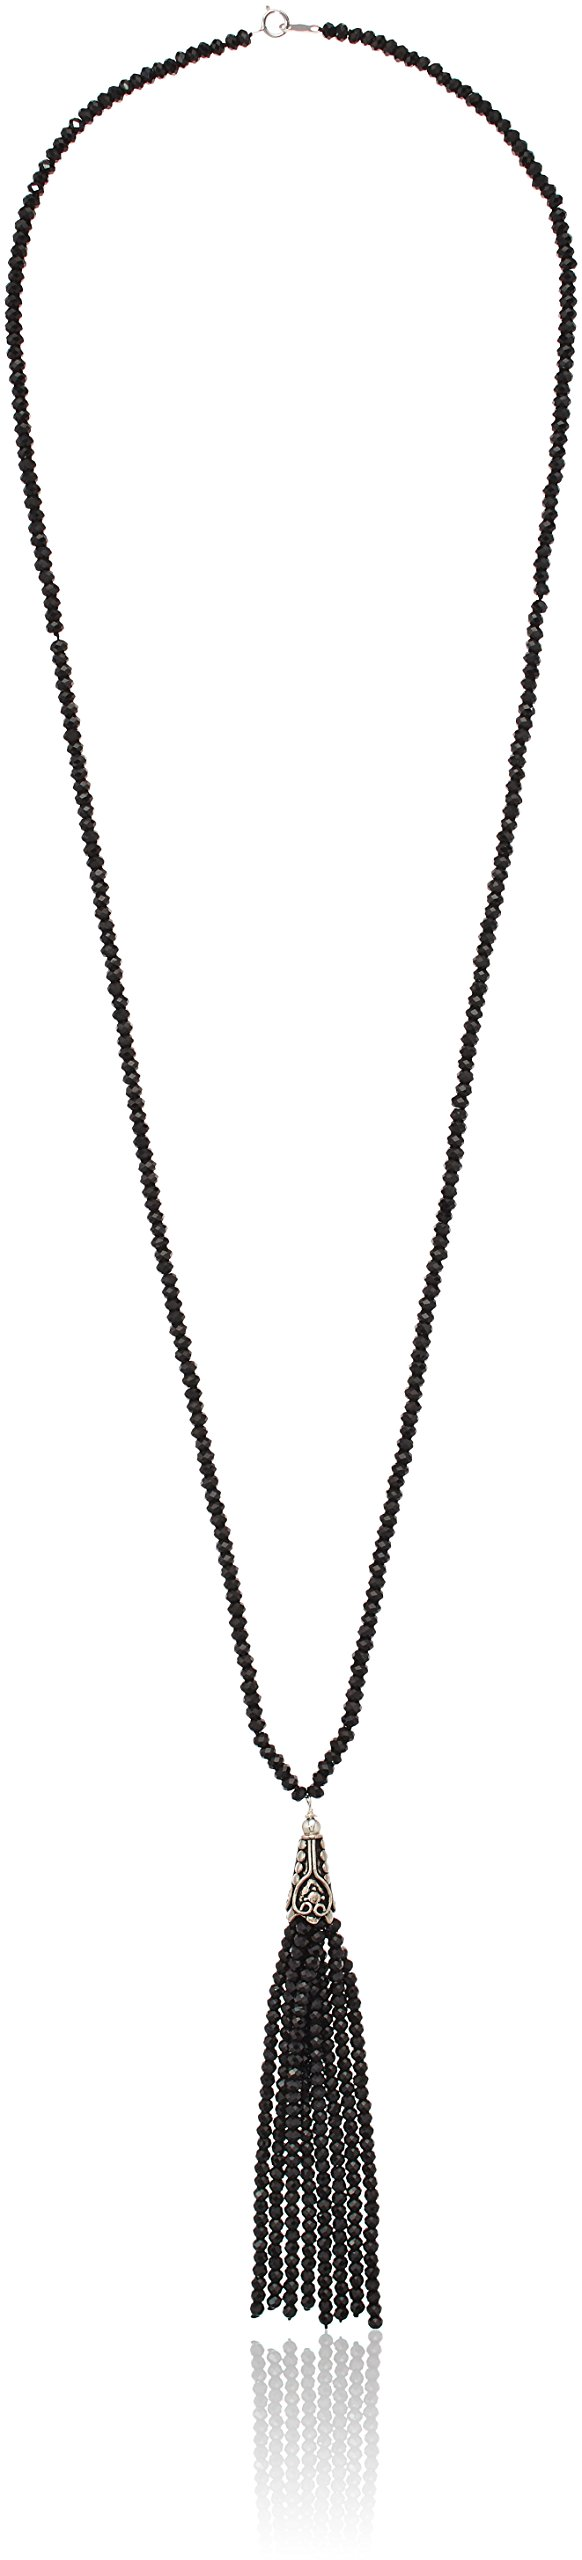 Black Spinel Long Beaded Tassel Pendant Highlighted with Sterling Silver Fancy Cap Pendant Necklace, 28''